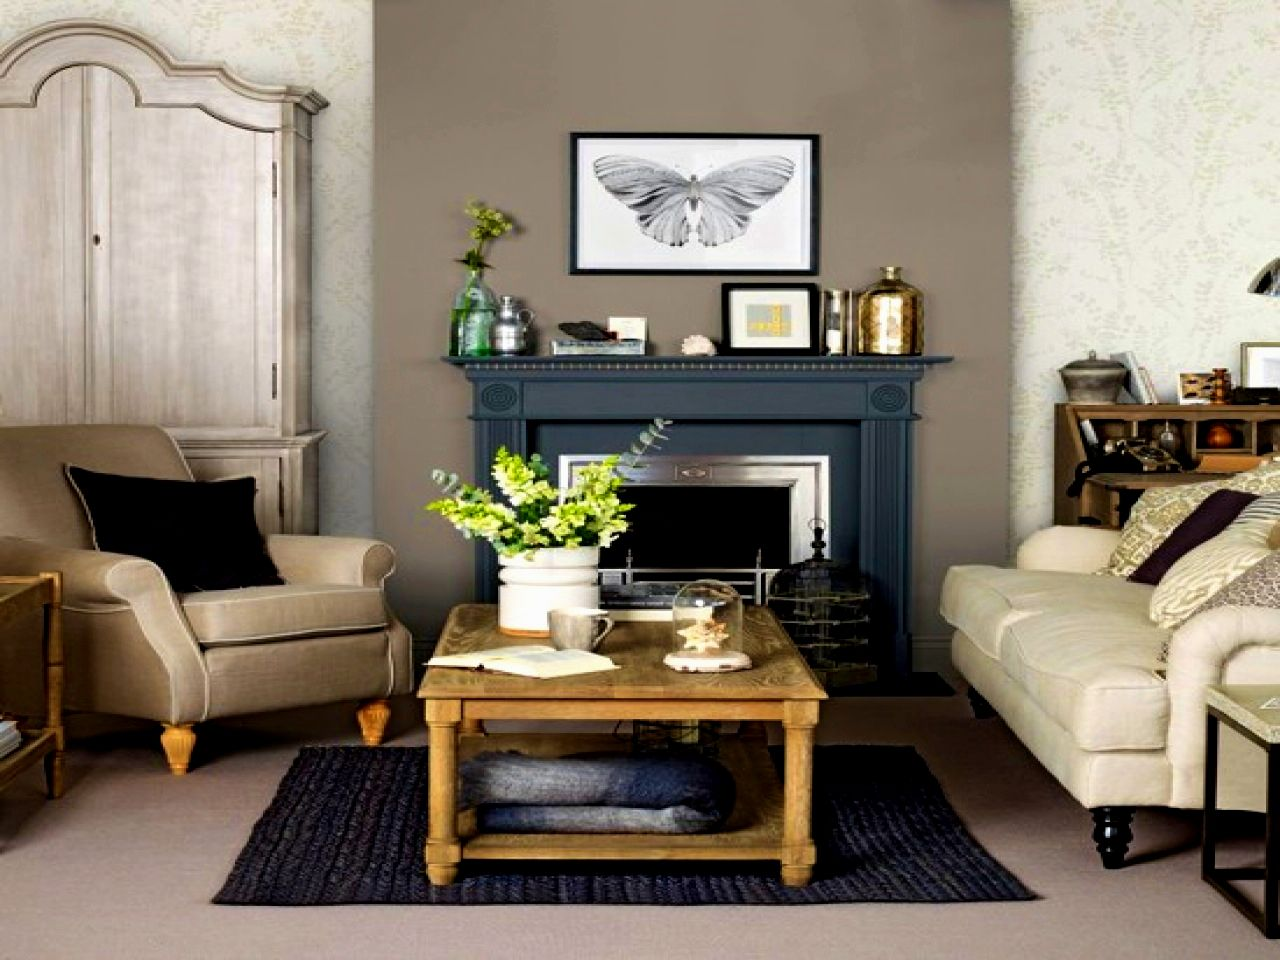 fancy how to clean leather sofa gallery-Latest How to Clean Leather sofa Décor